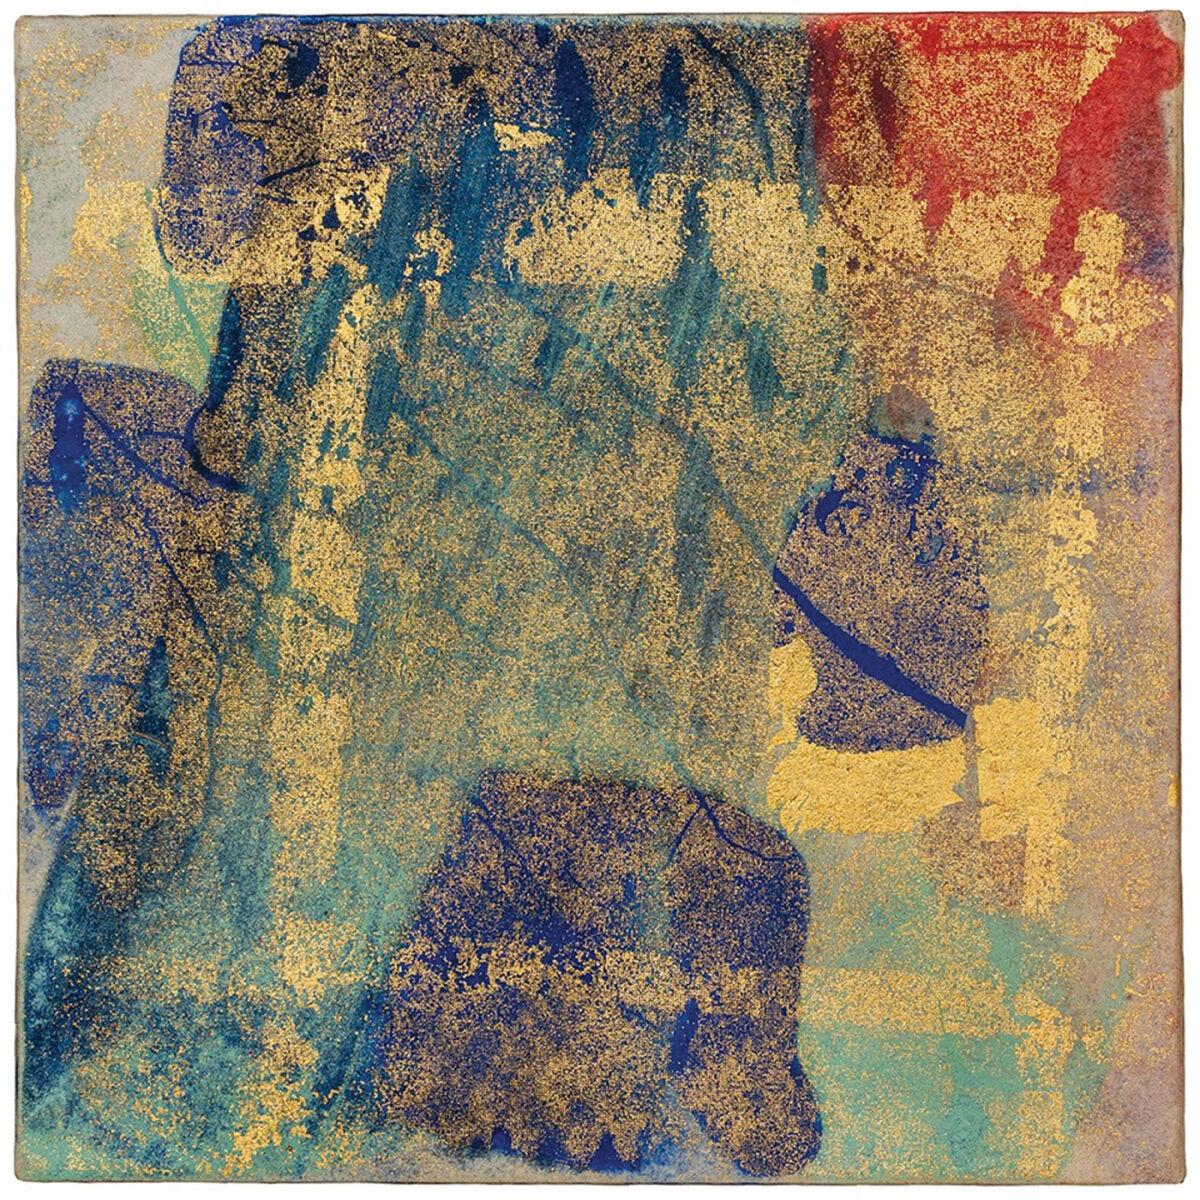 New Creation No 7, mineral pigments and gold, 6 x 6 inches.jpg